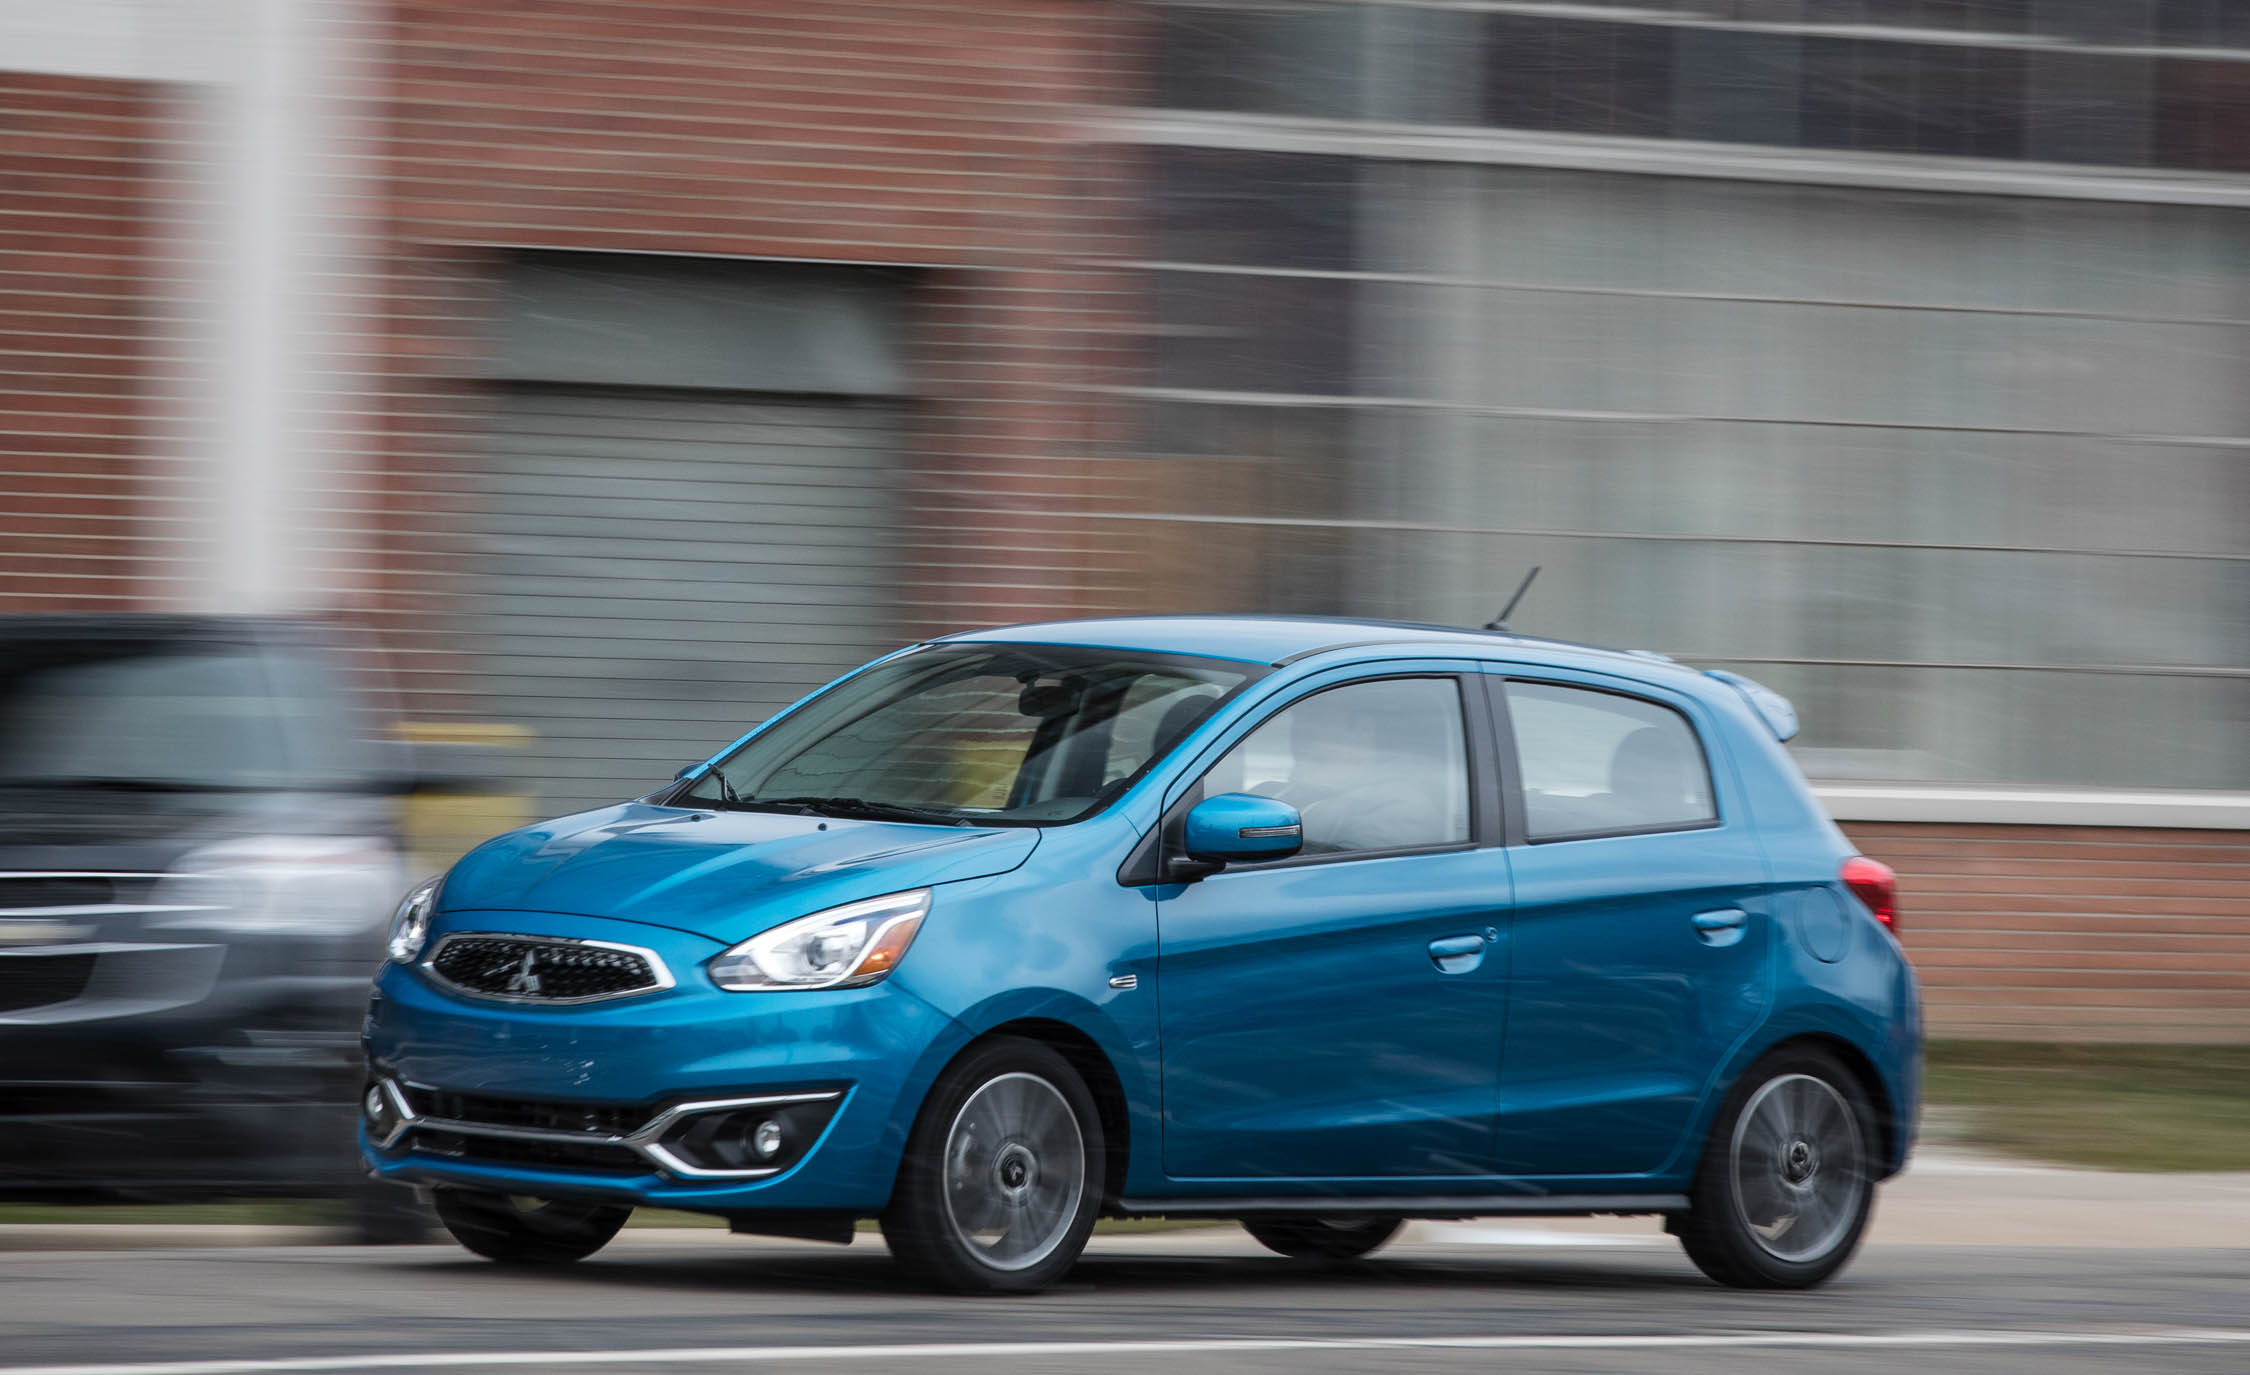 2017 Mitsubishi Mirage GT (View 5 of 21)